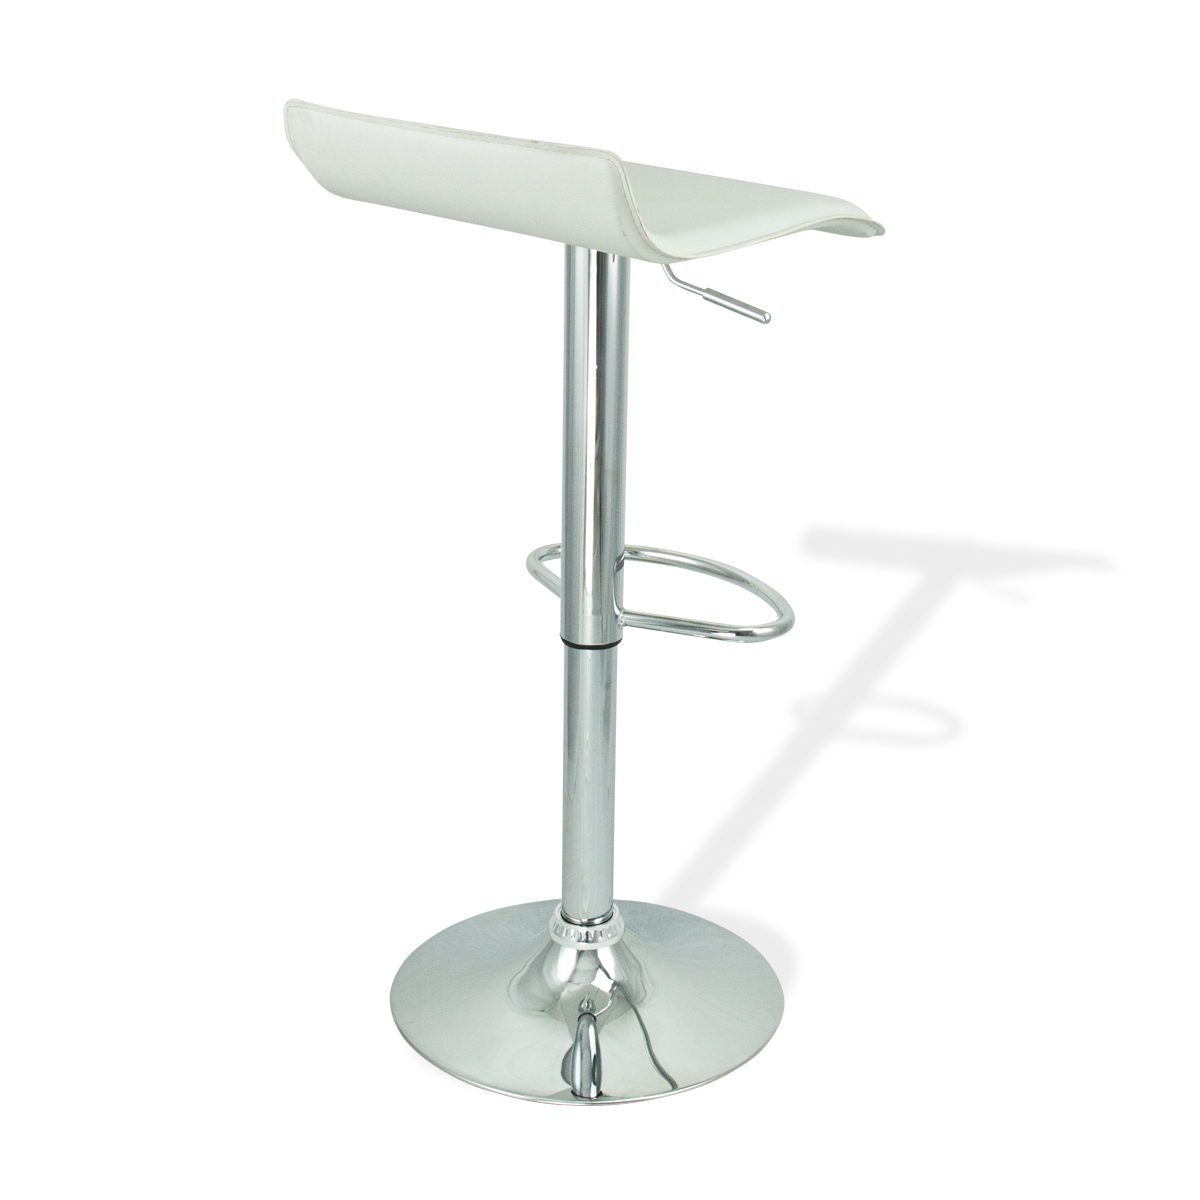 4 New White Swivel Seat Modern Bombo Chair Pub Bar Stool